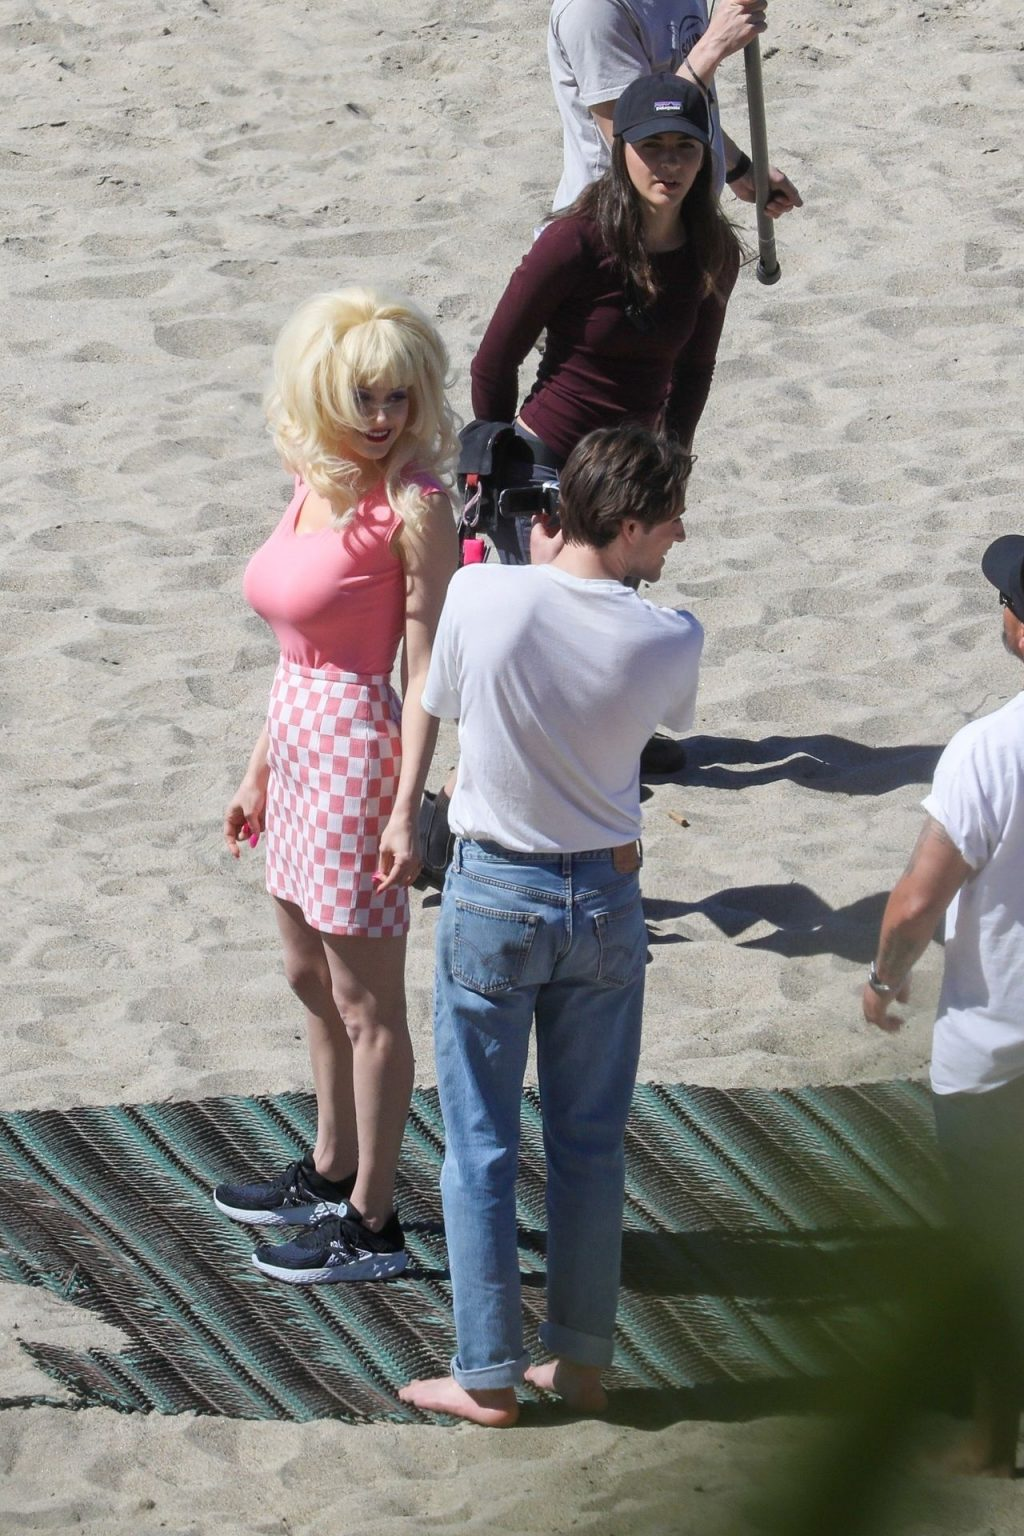 Emmy Rossum Films Scenes as the Iconic Angelyne on the Beach in Malibu (60 Photos)